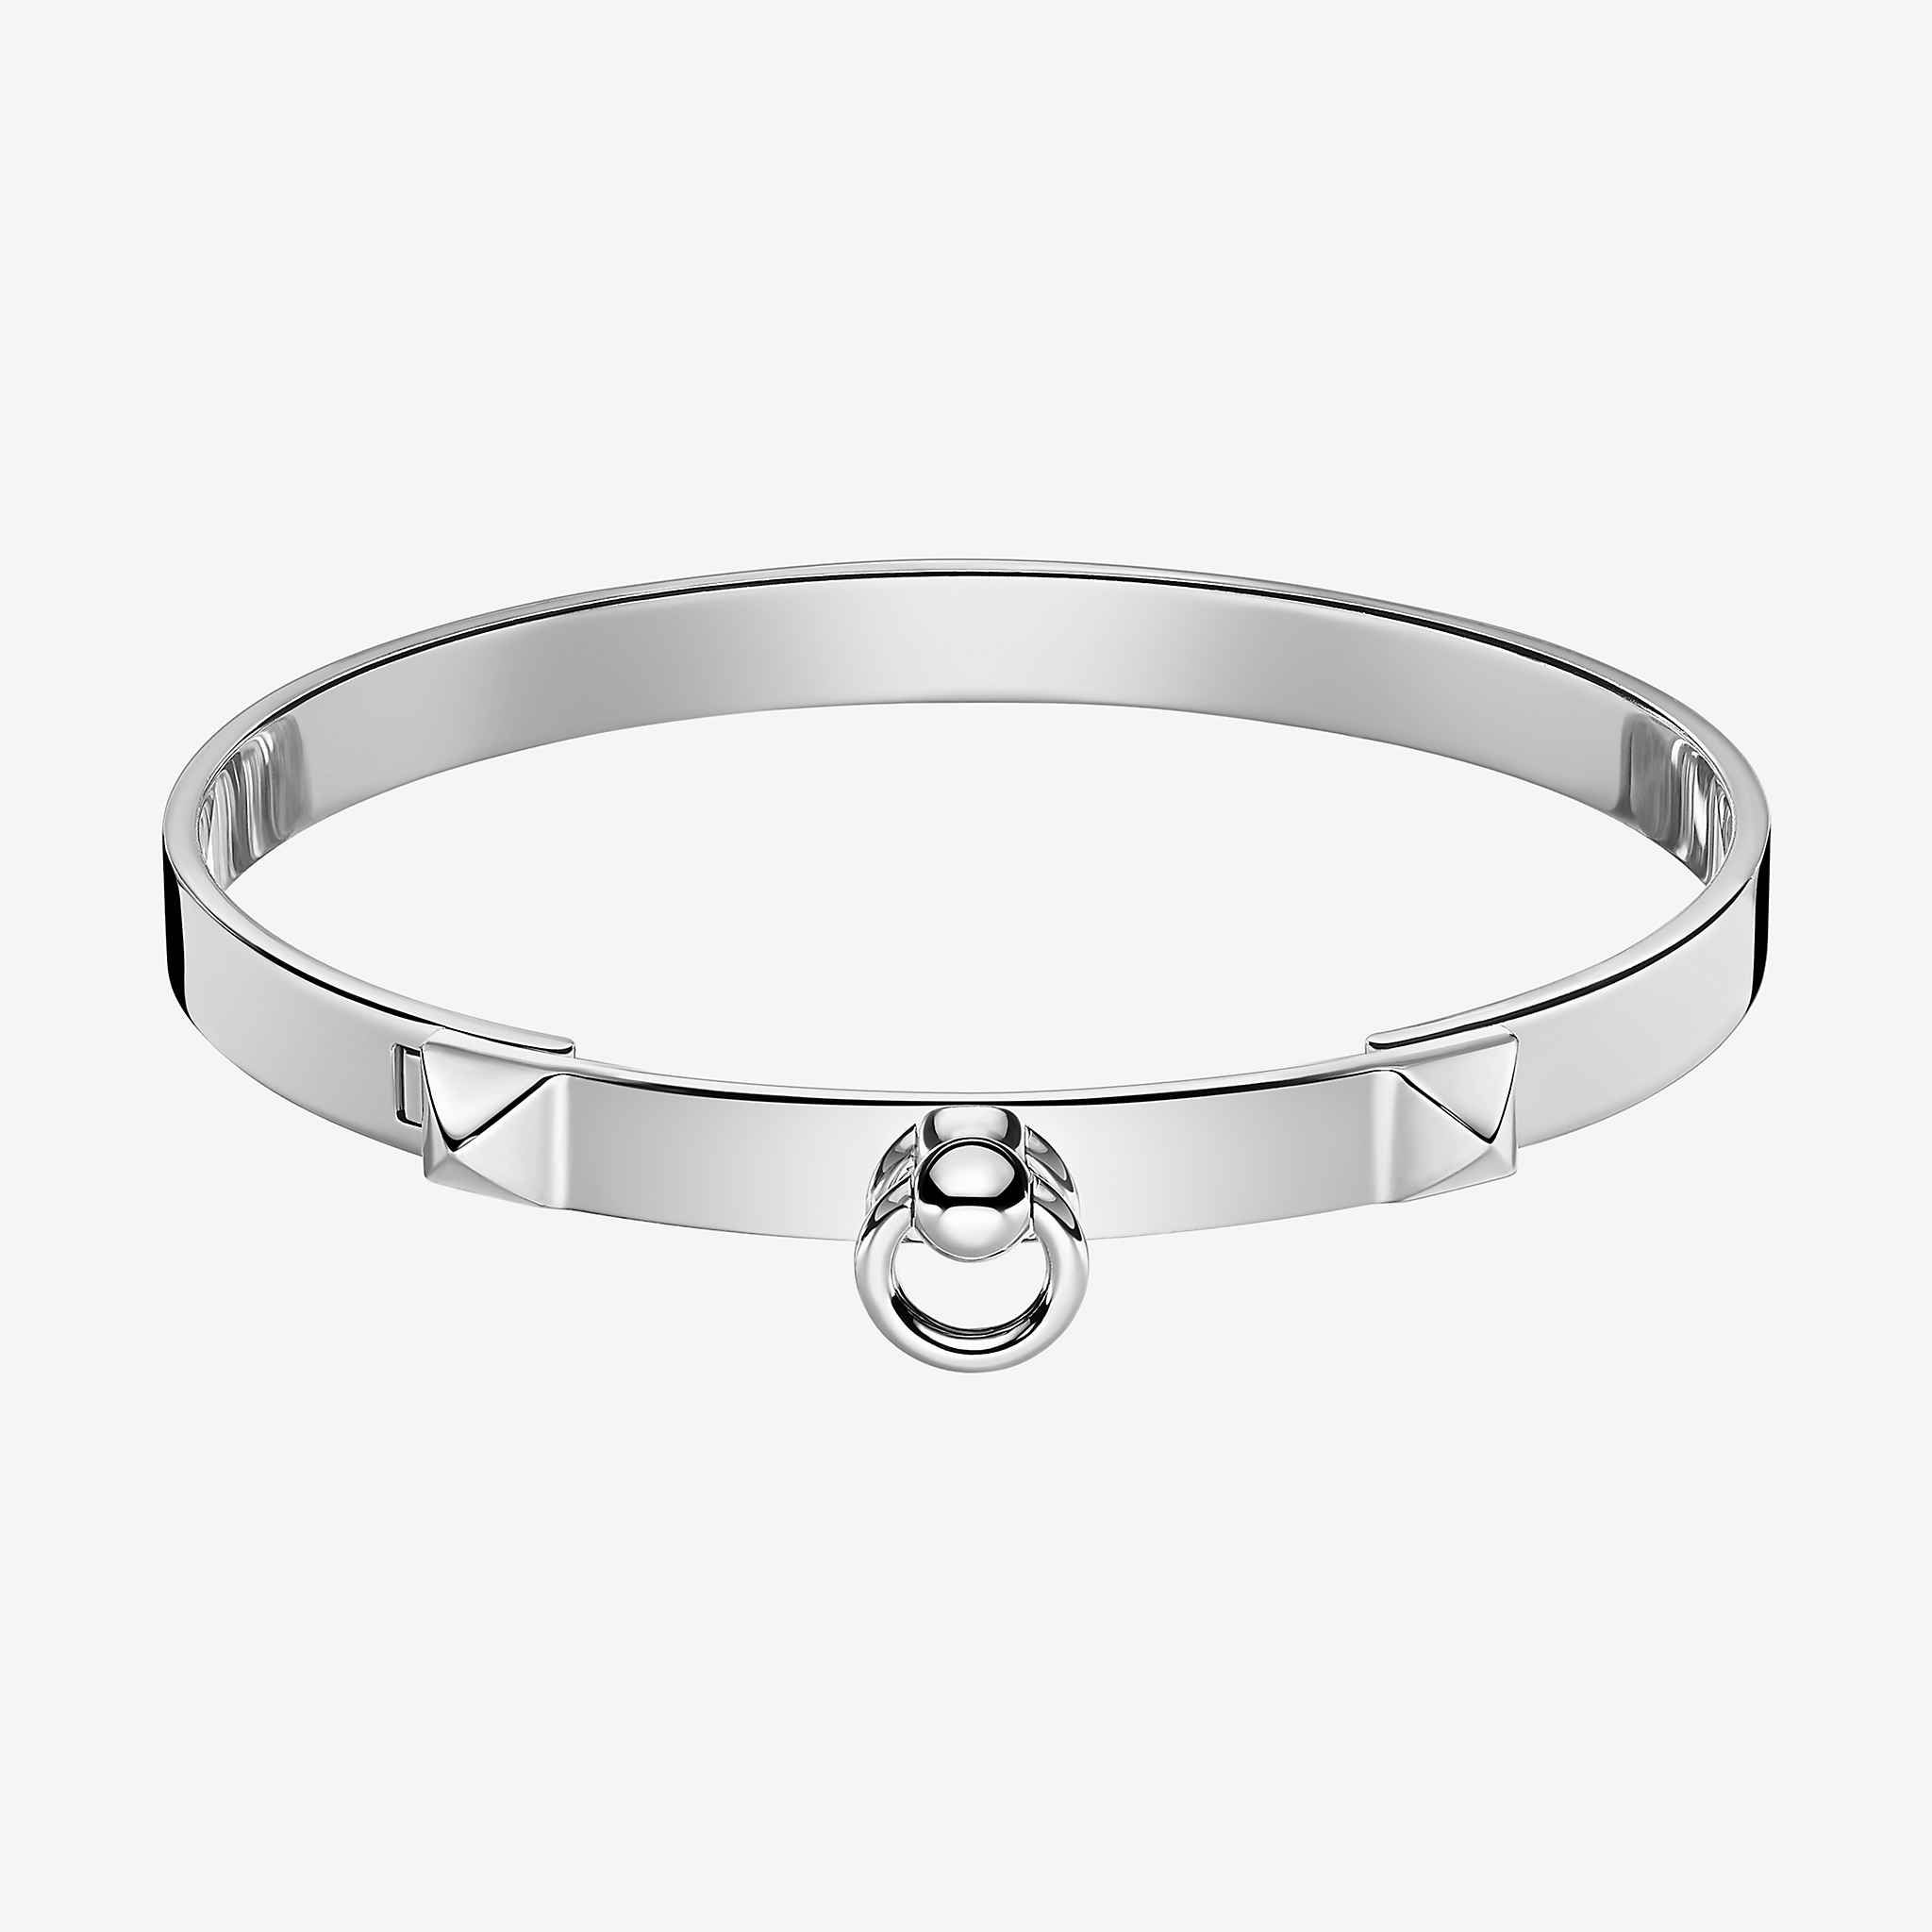 cuff swift de bracelet garderobe chien collier products silver alligator etoupe hermes dog kelly plated